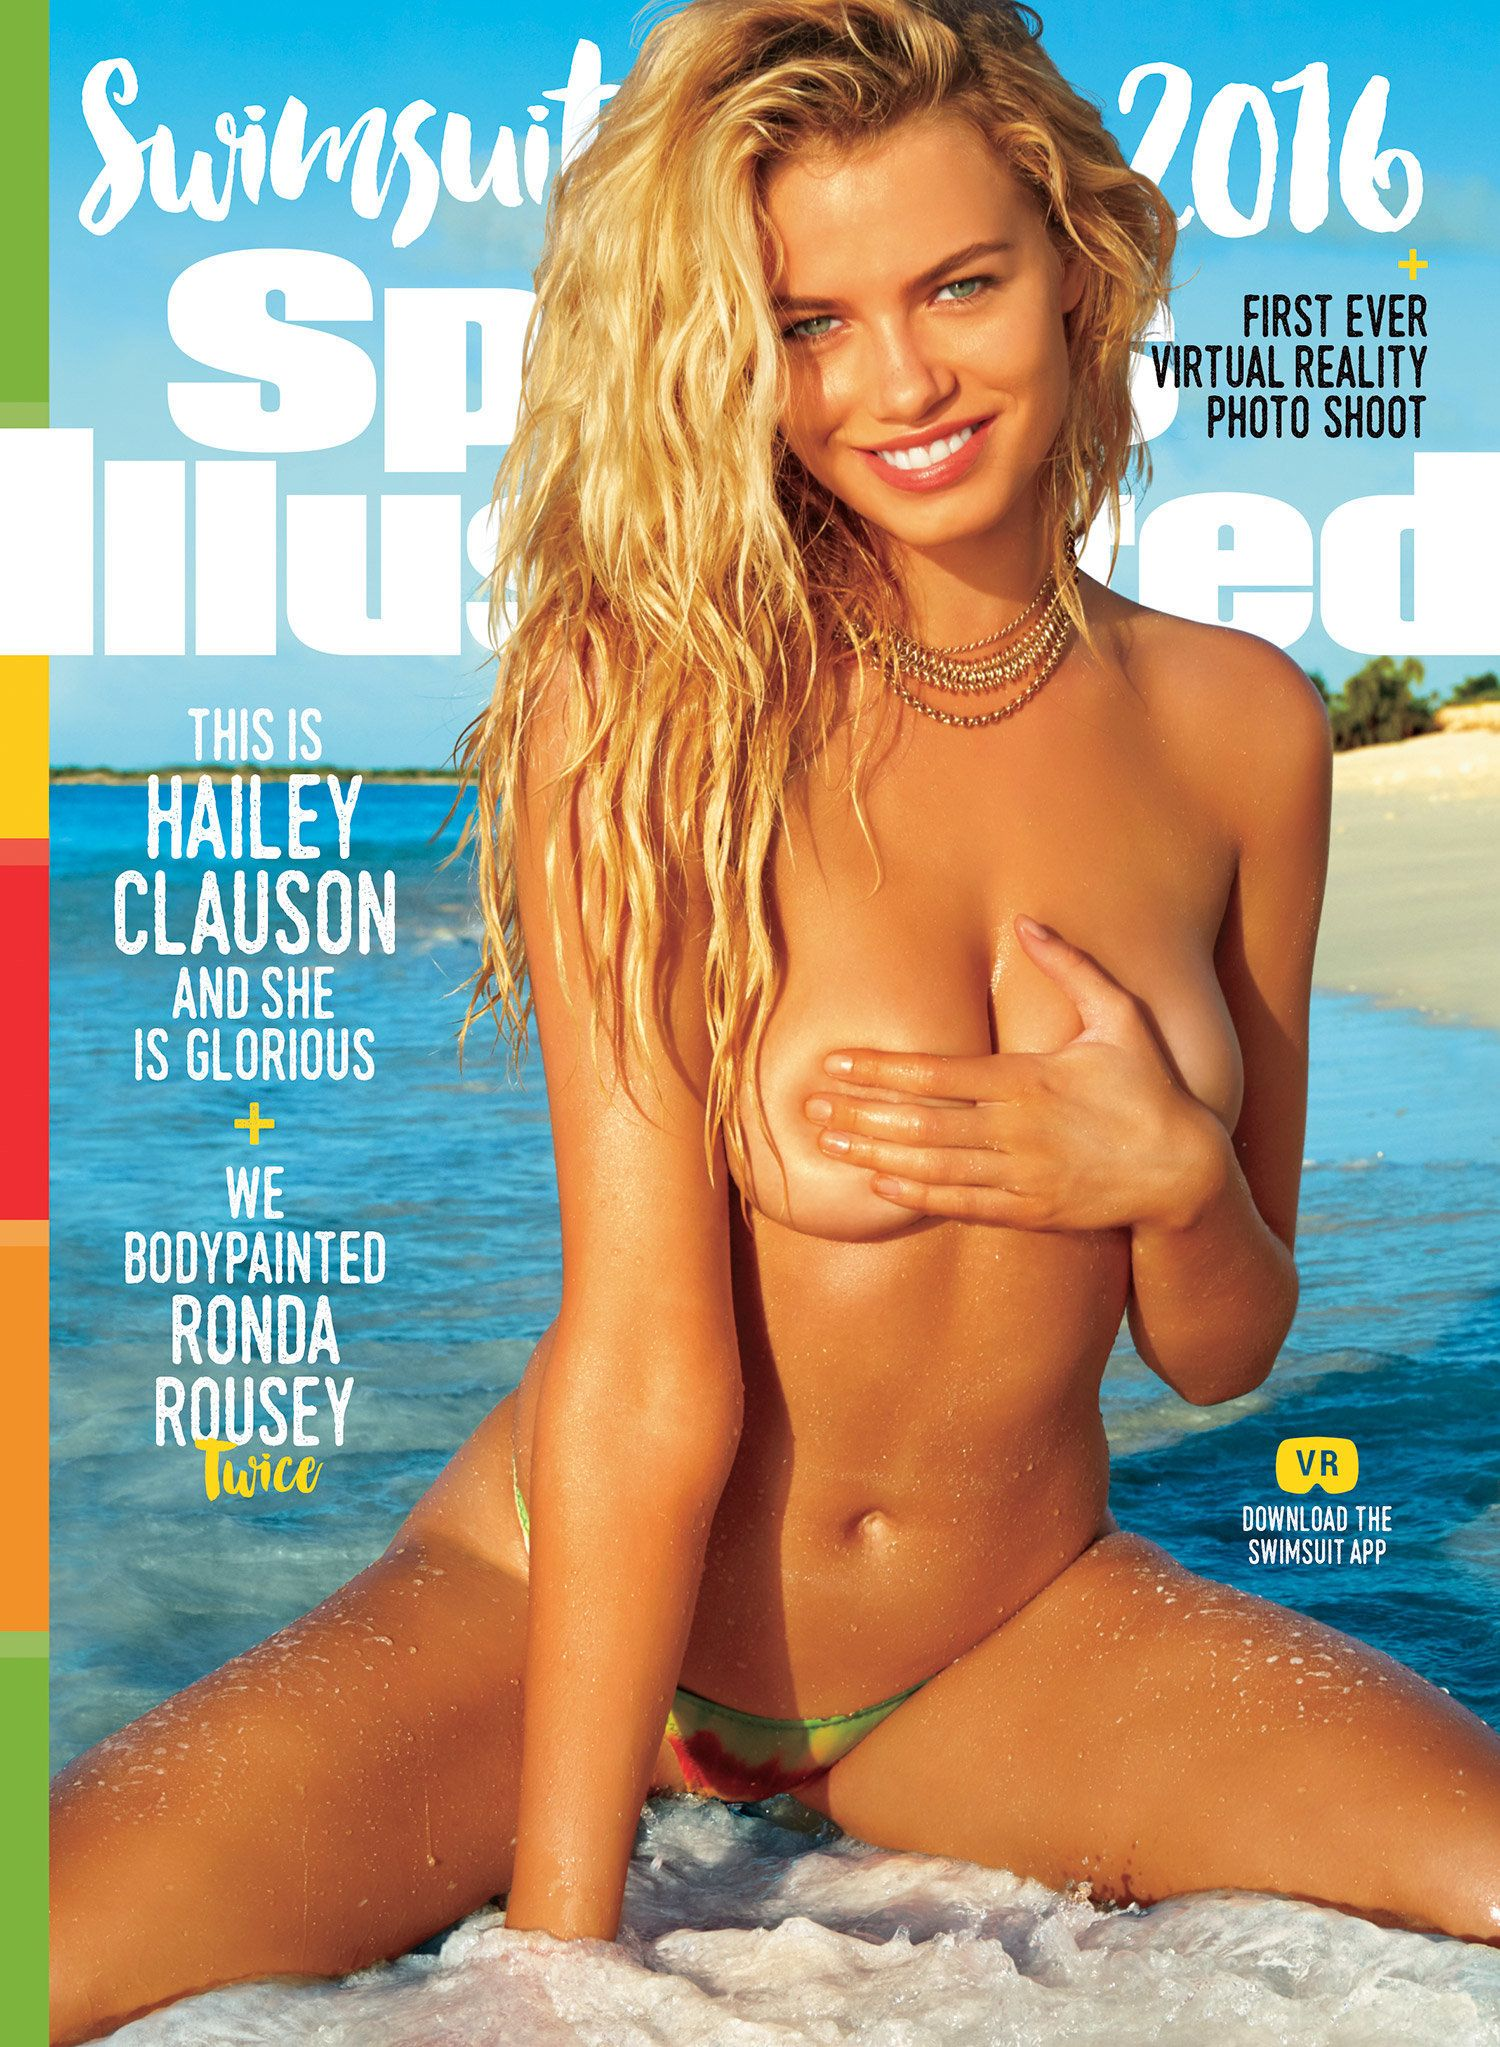 American model Hailey Clauson covers the 2016 Sports Illustrated Swimsuit Issue, on sale Monday.